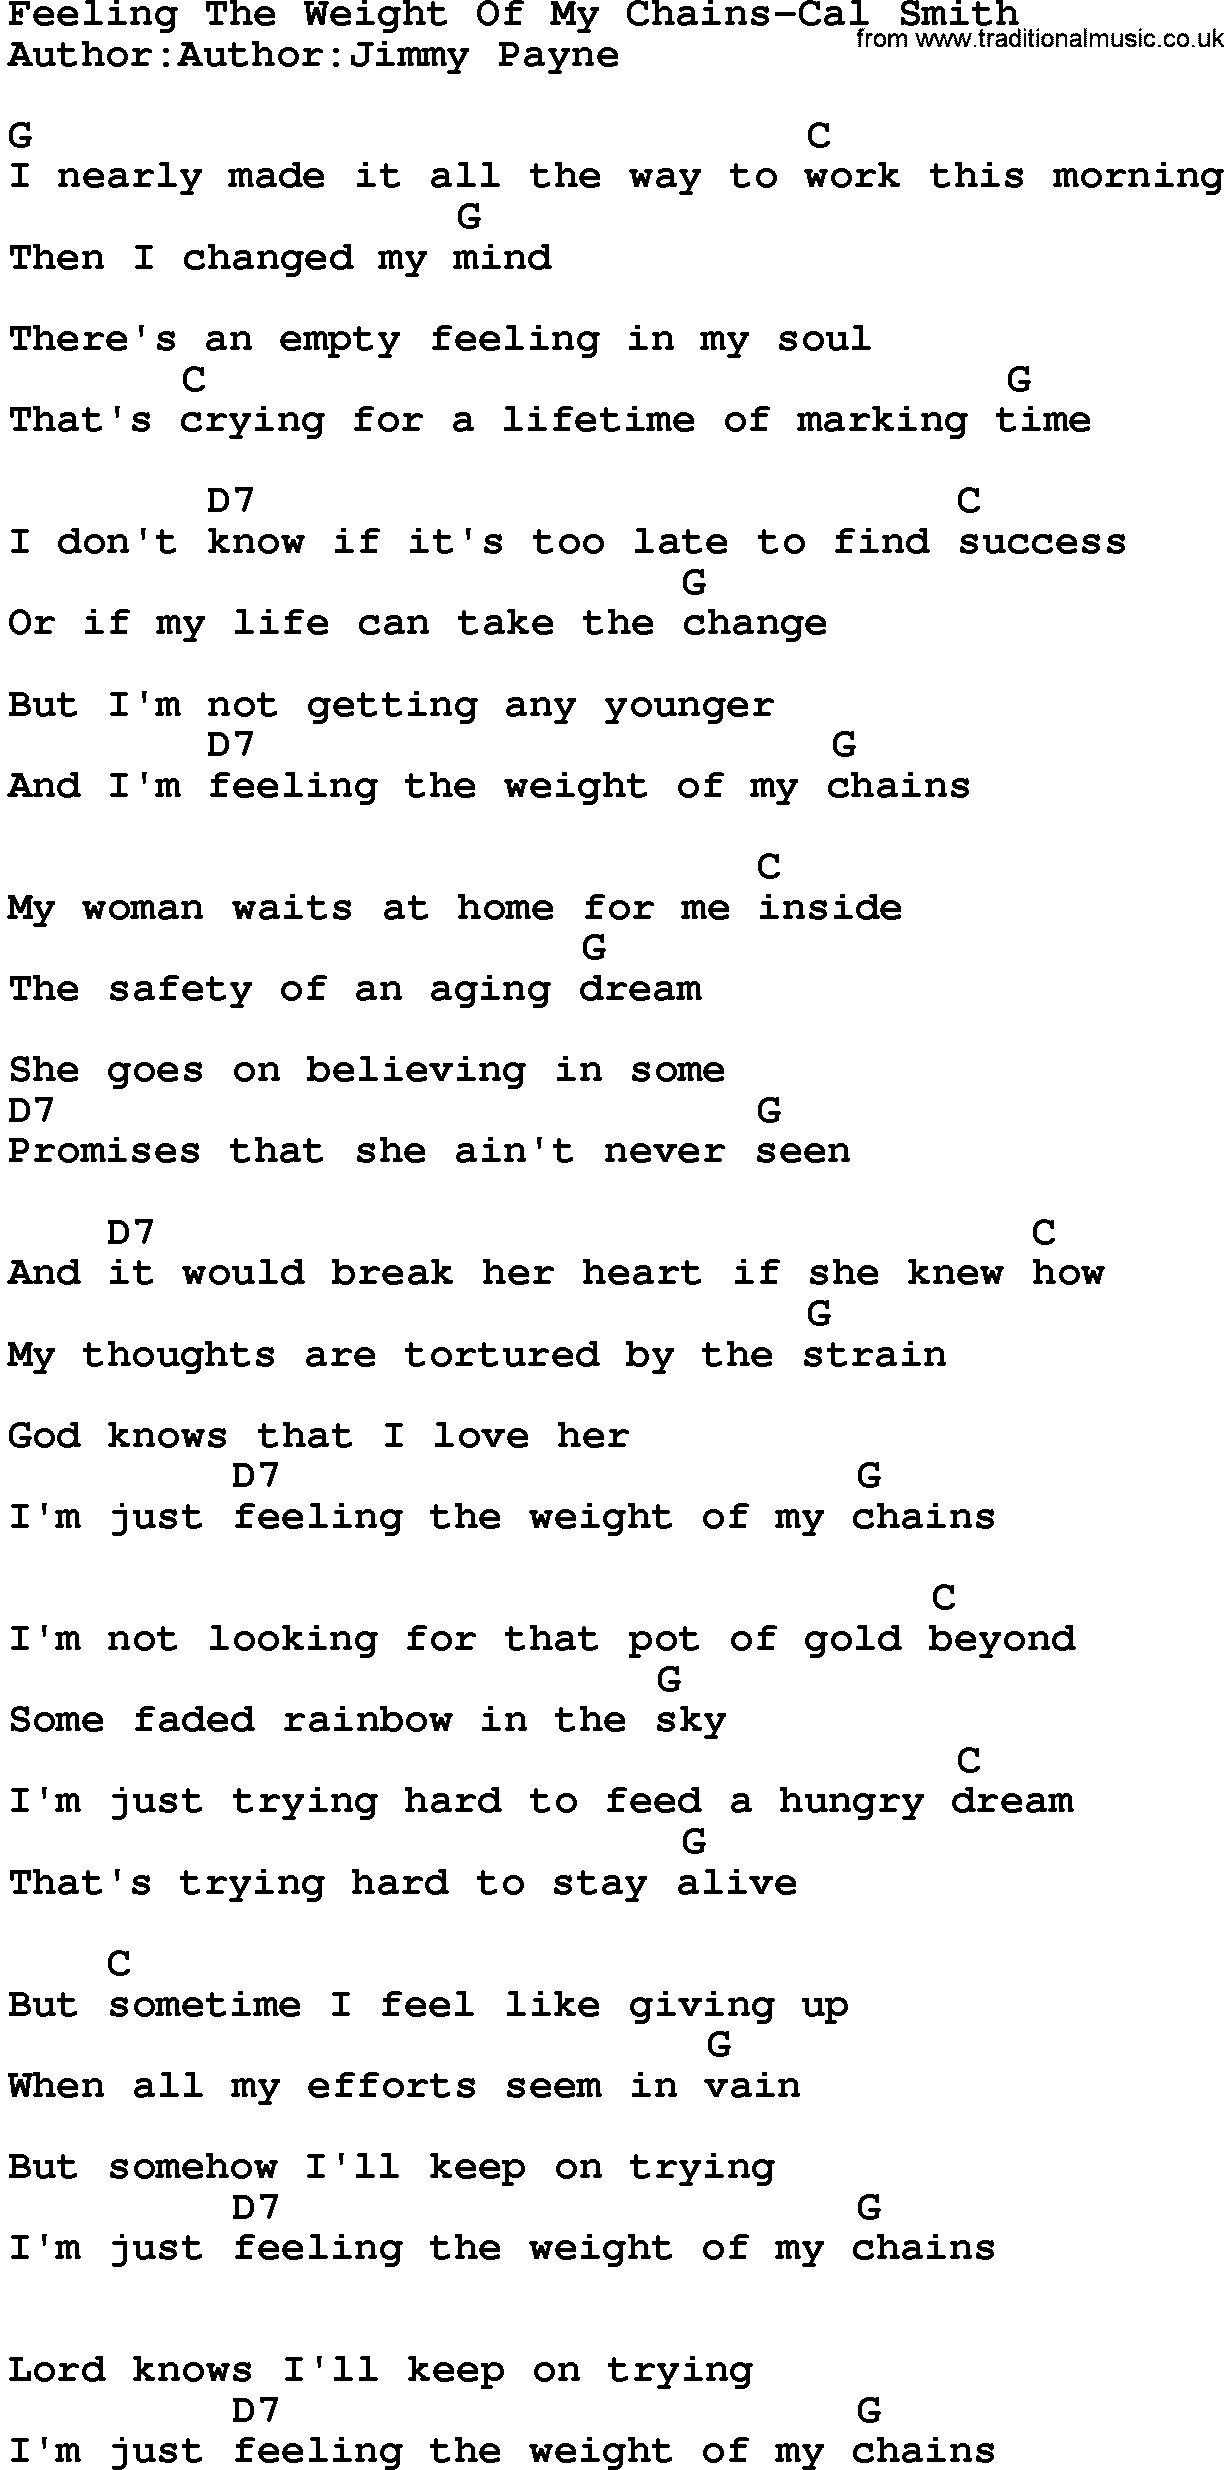 The Weight Chords Country Musicfeeling The Weight Of My Chains Cal Smith Lyrics And